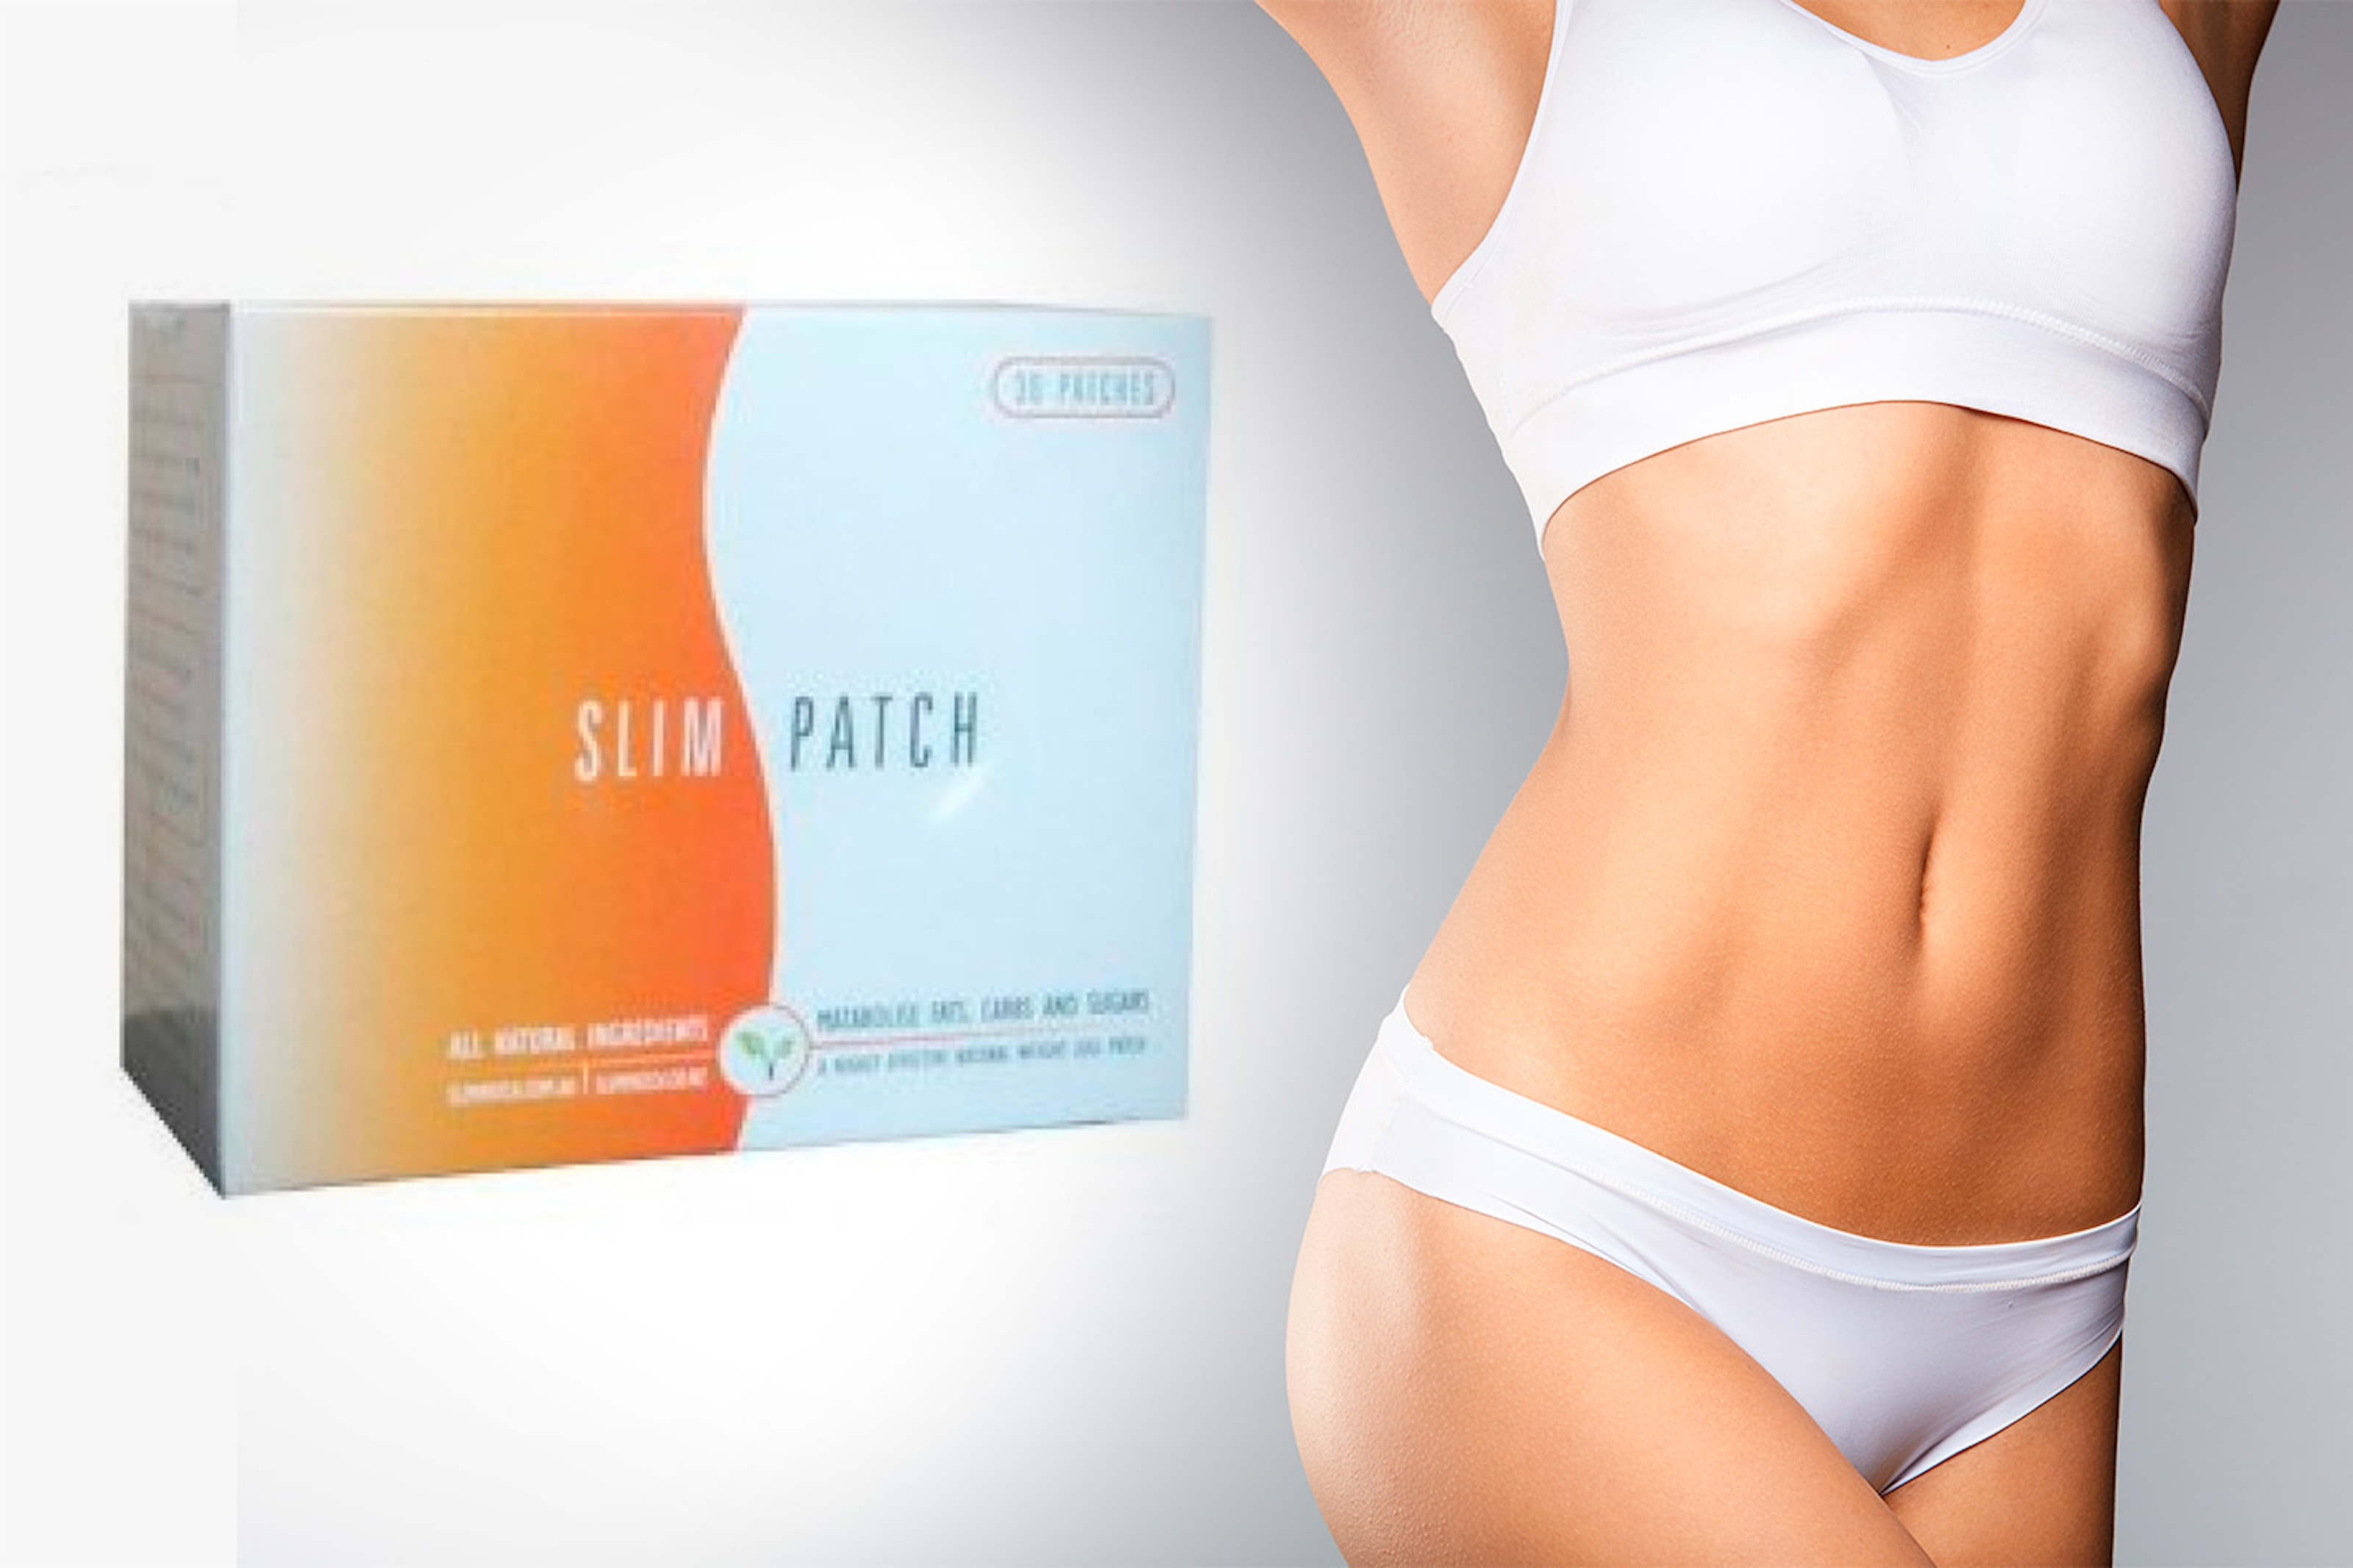 Slimming patches – 30 Day Kit